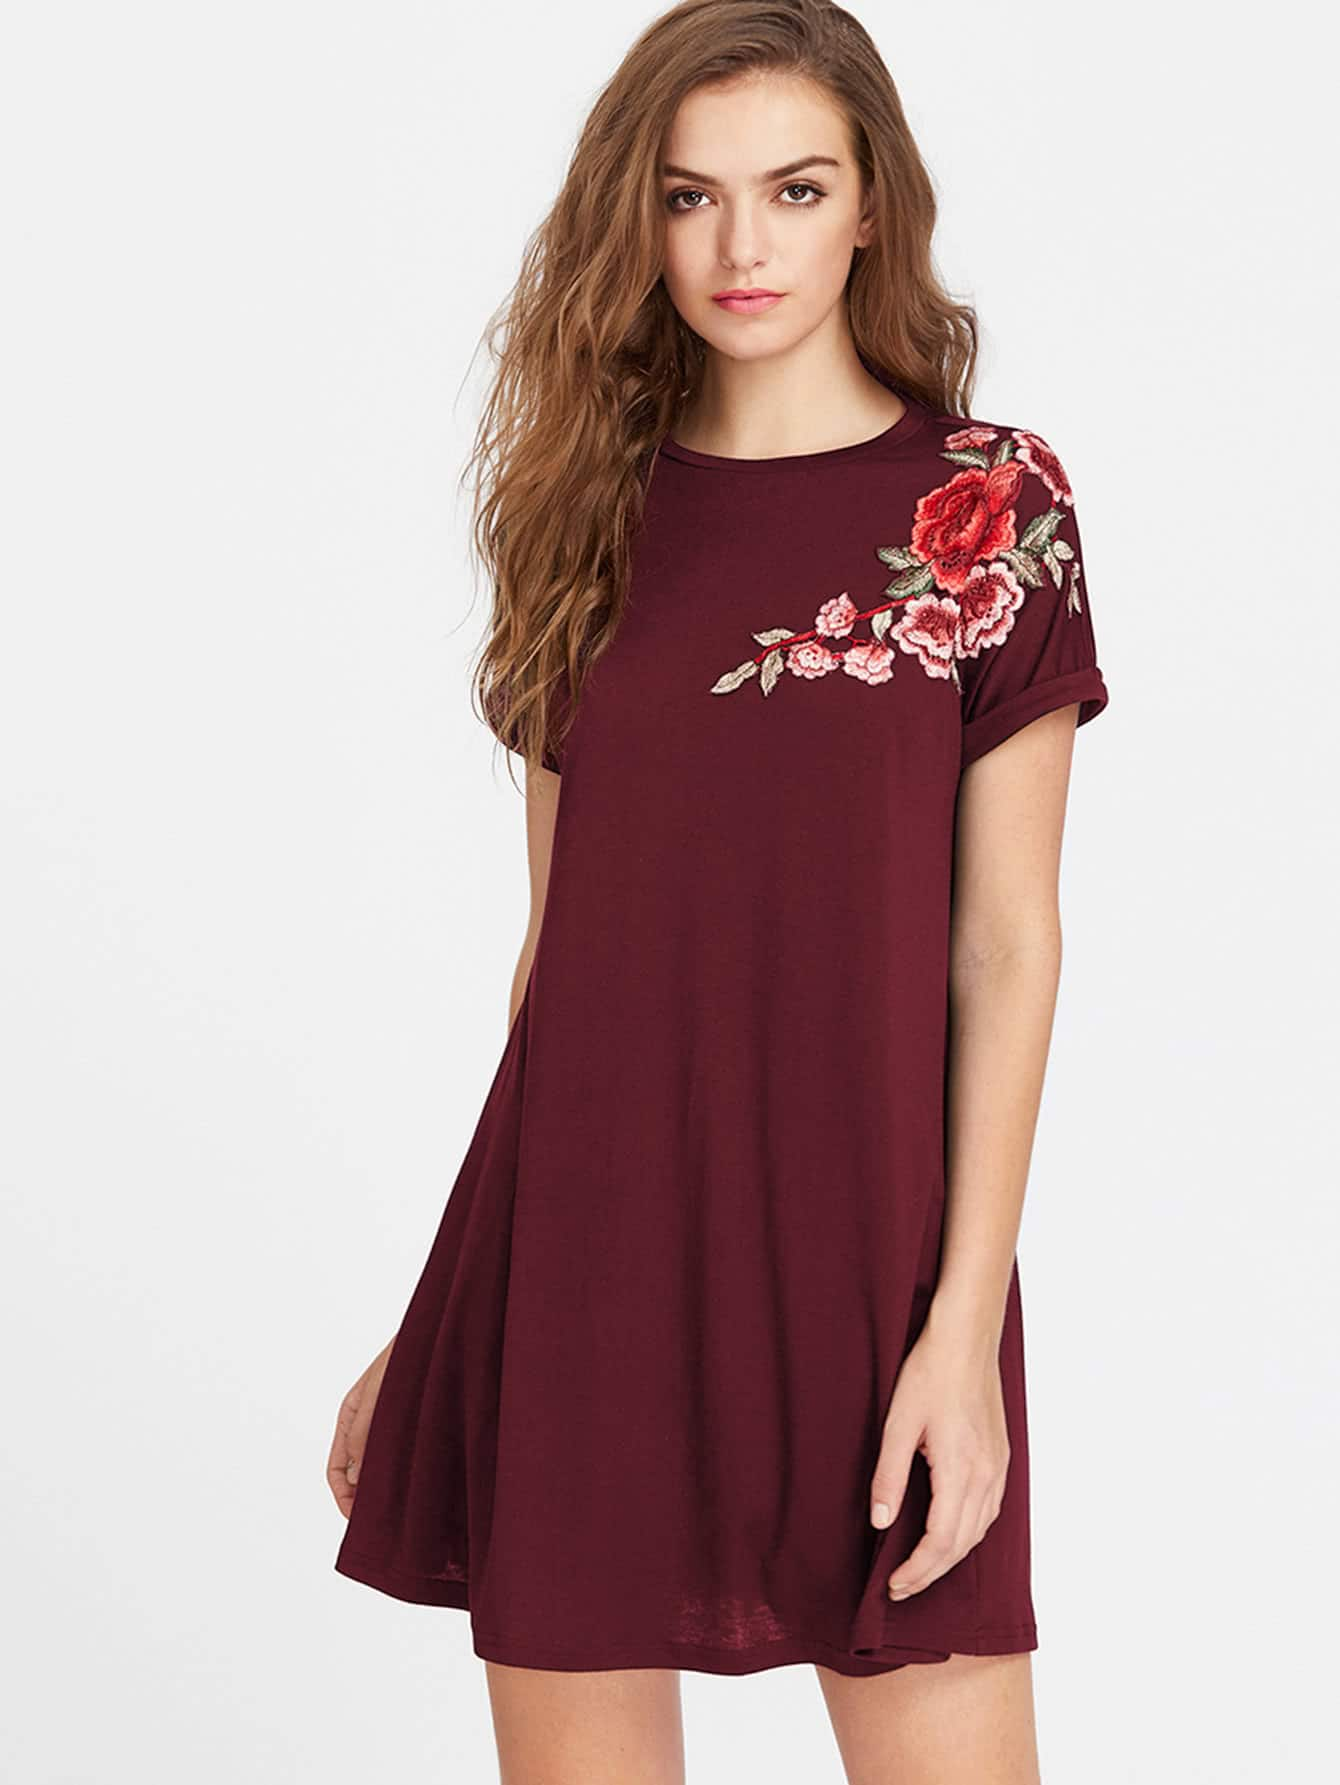 Embroidered Flower Applique Swing Tee Dress embroidered flower applique mesh sweetheart tee